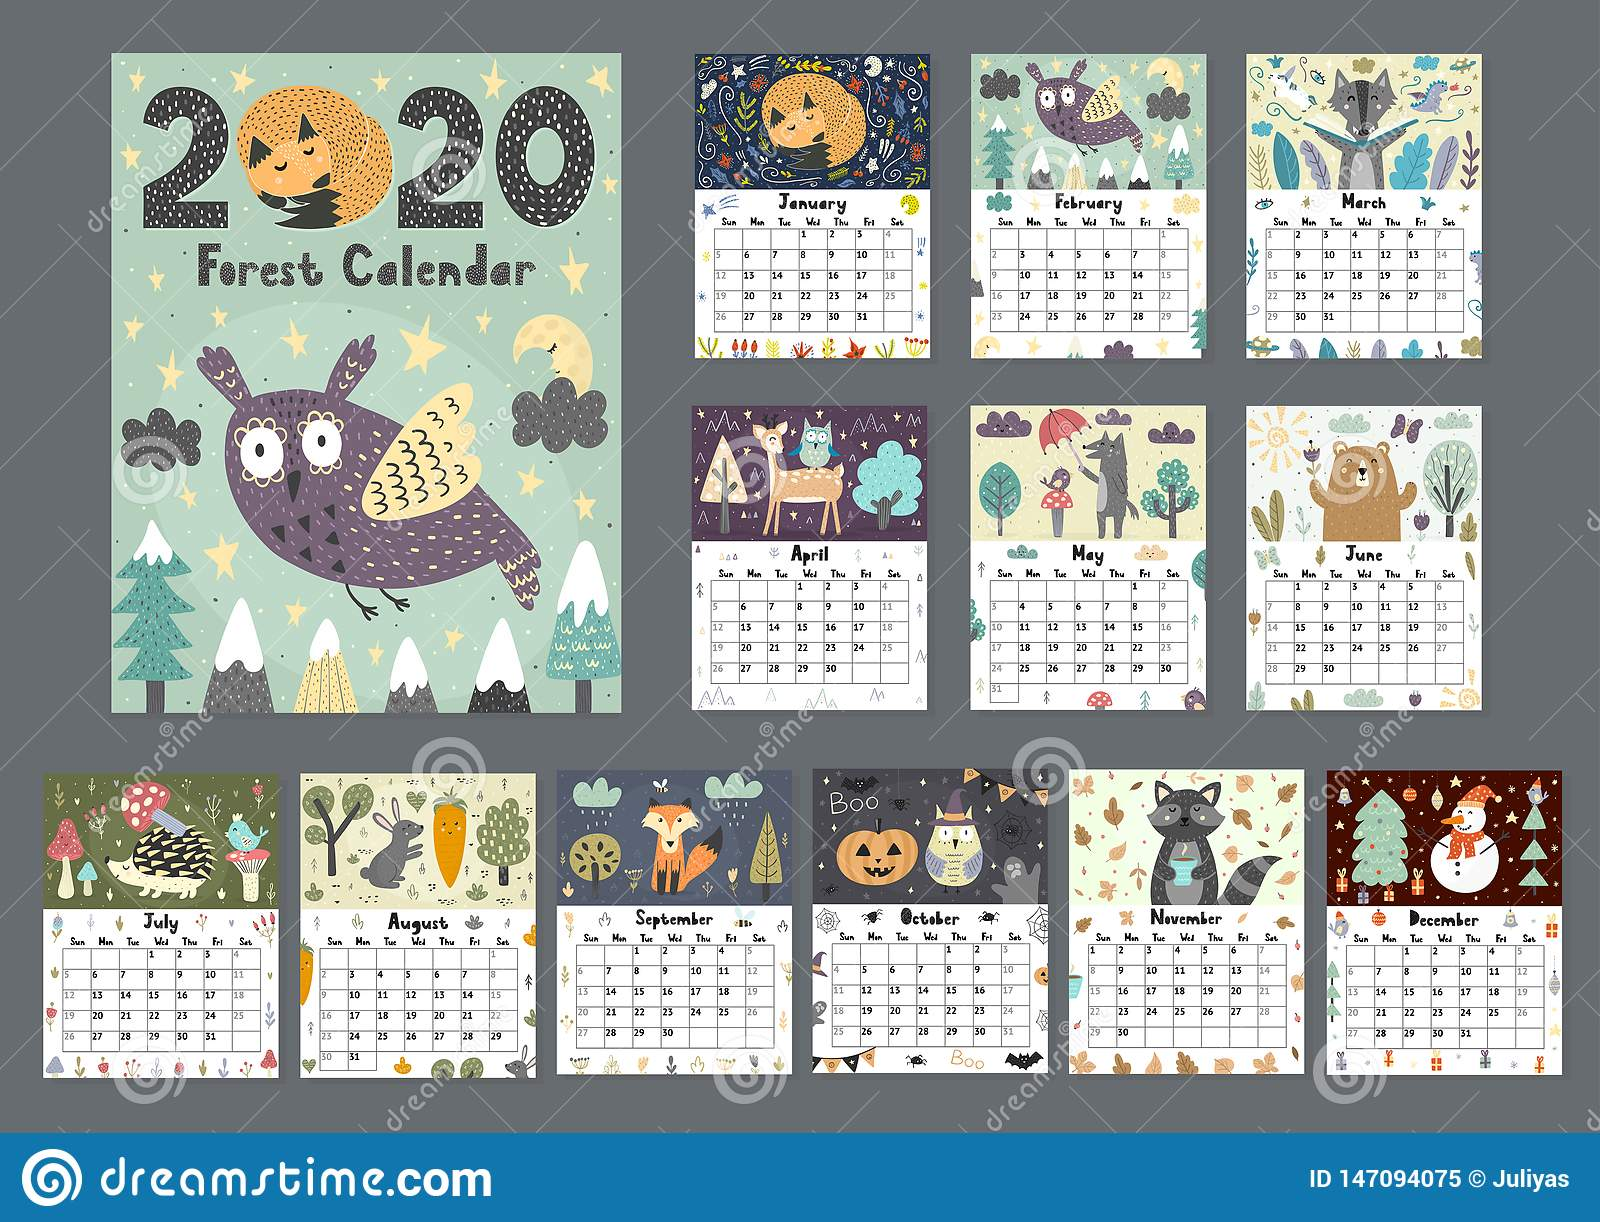 Forest calendar for 2020 year. Printable planner of 12 months with cute animals